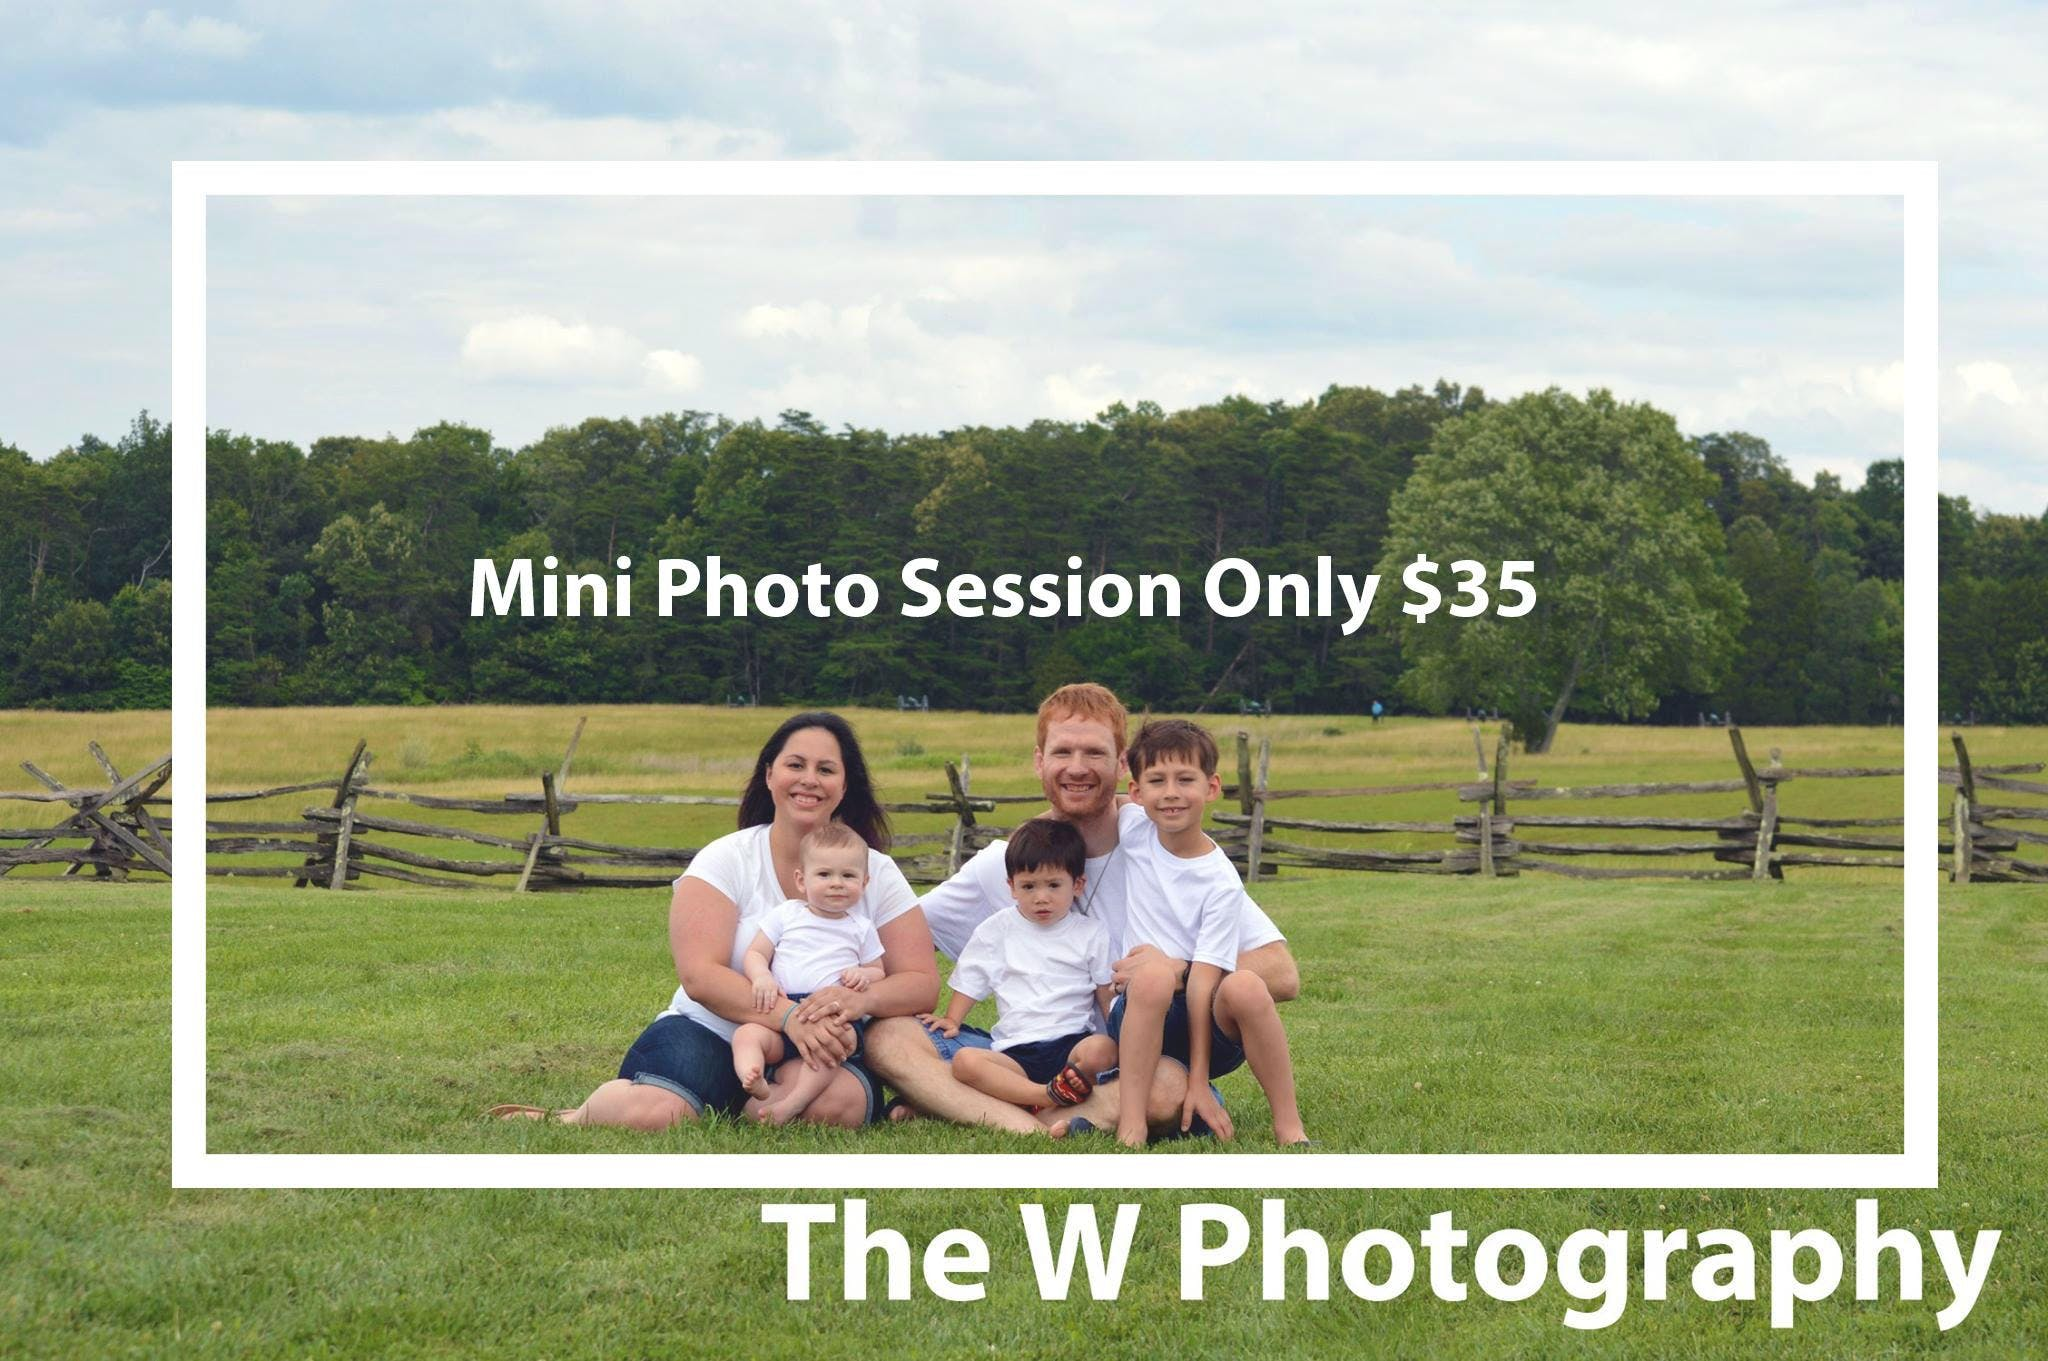 Limited Mini Photo-Shoot at Devou Park The W